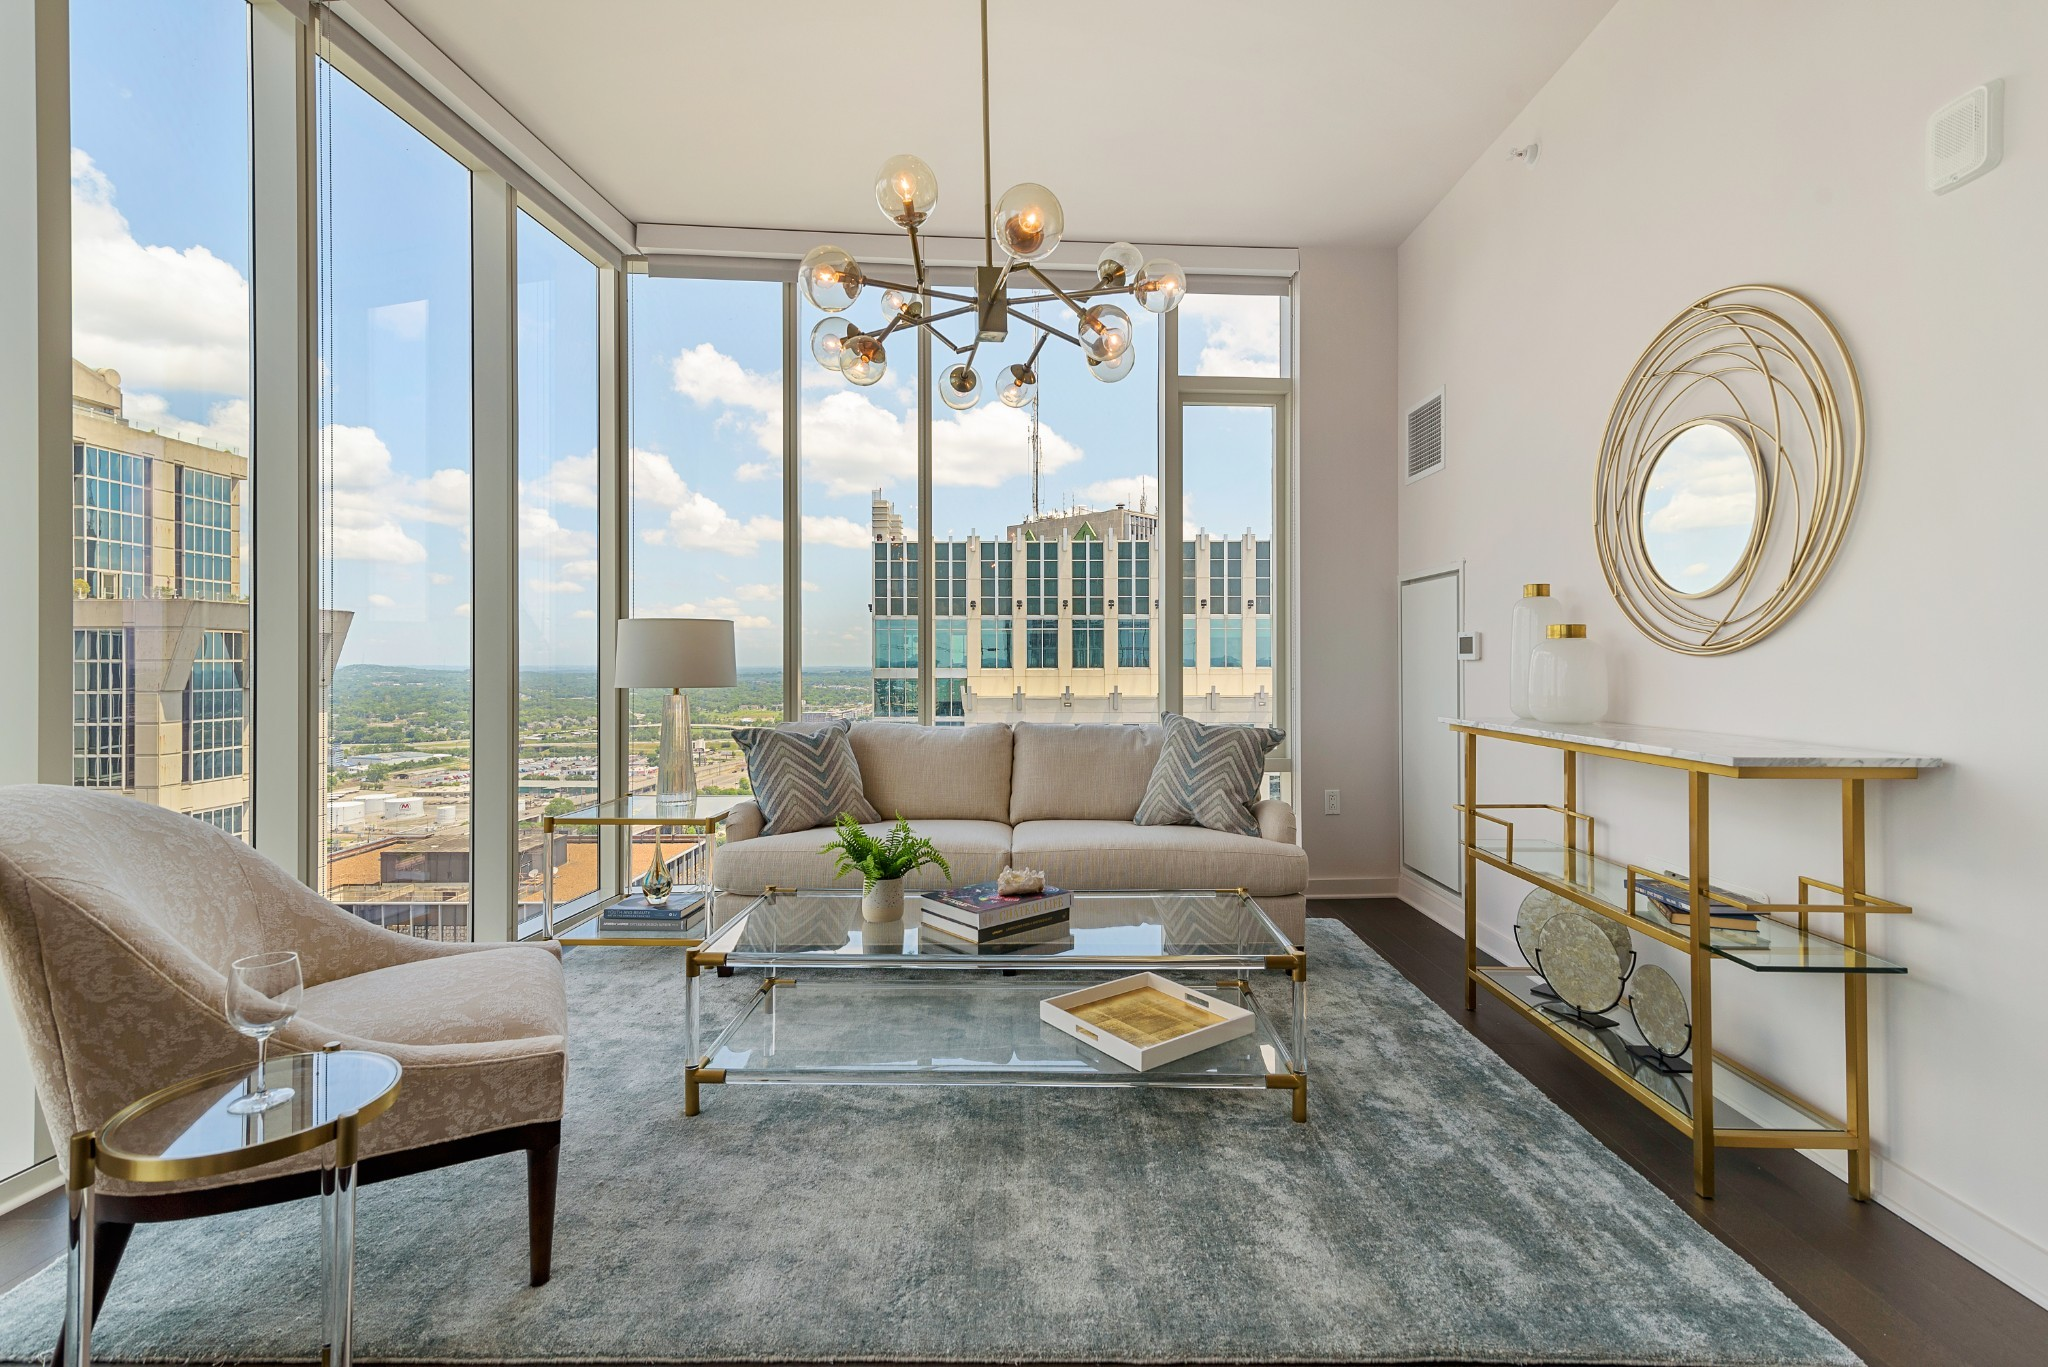 Unparalleled luxury living in Nashville's exclusive 505 building*Extraordinary floor-to-ceiling views of downtown and distant rolling hills*the highest quality construction*Spectacular amenities include resort-style pool, cabanas, tennis, Technogym fitness center, dog park, plus owners-only wine cellar and wine tasting room, lounge, dining room and catering kitchen*Located in the epicenter of all downtown activities, walk to music, theater, sports and restaurants. Walk score: 97.